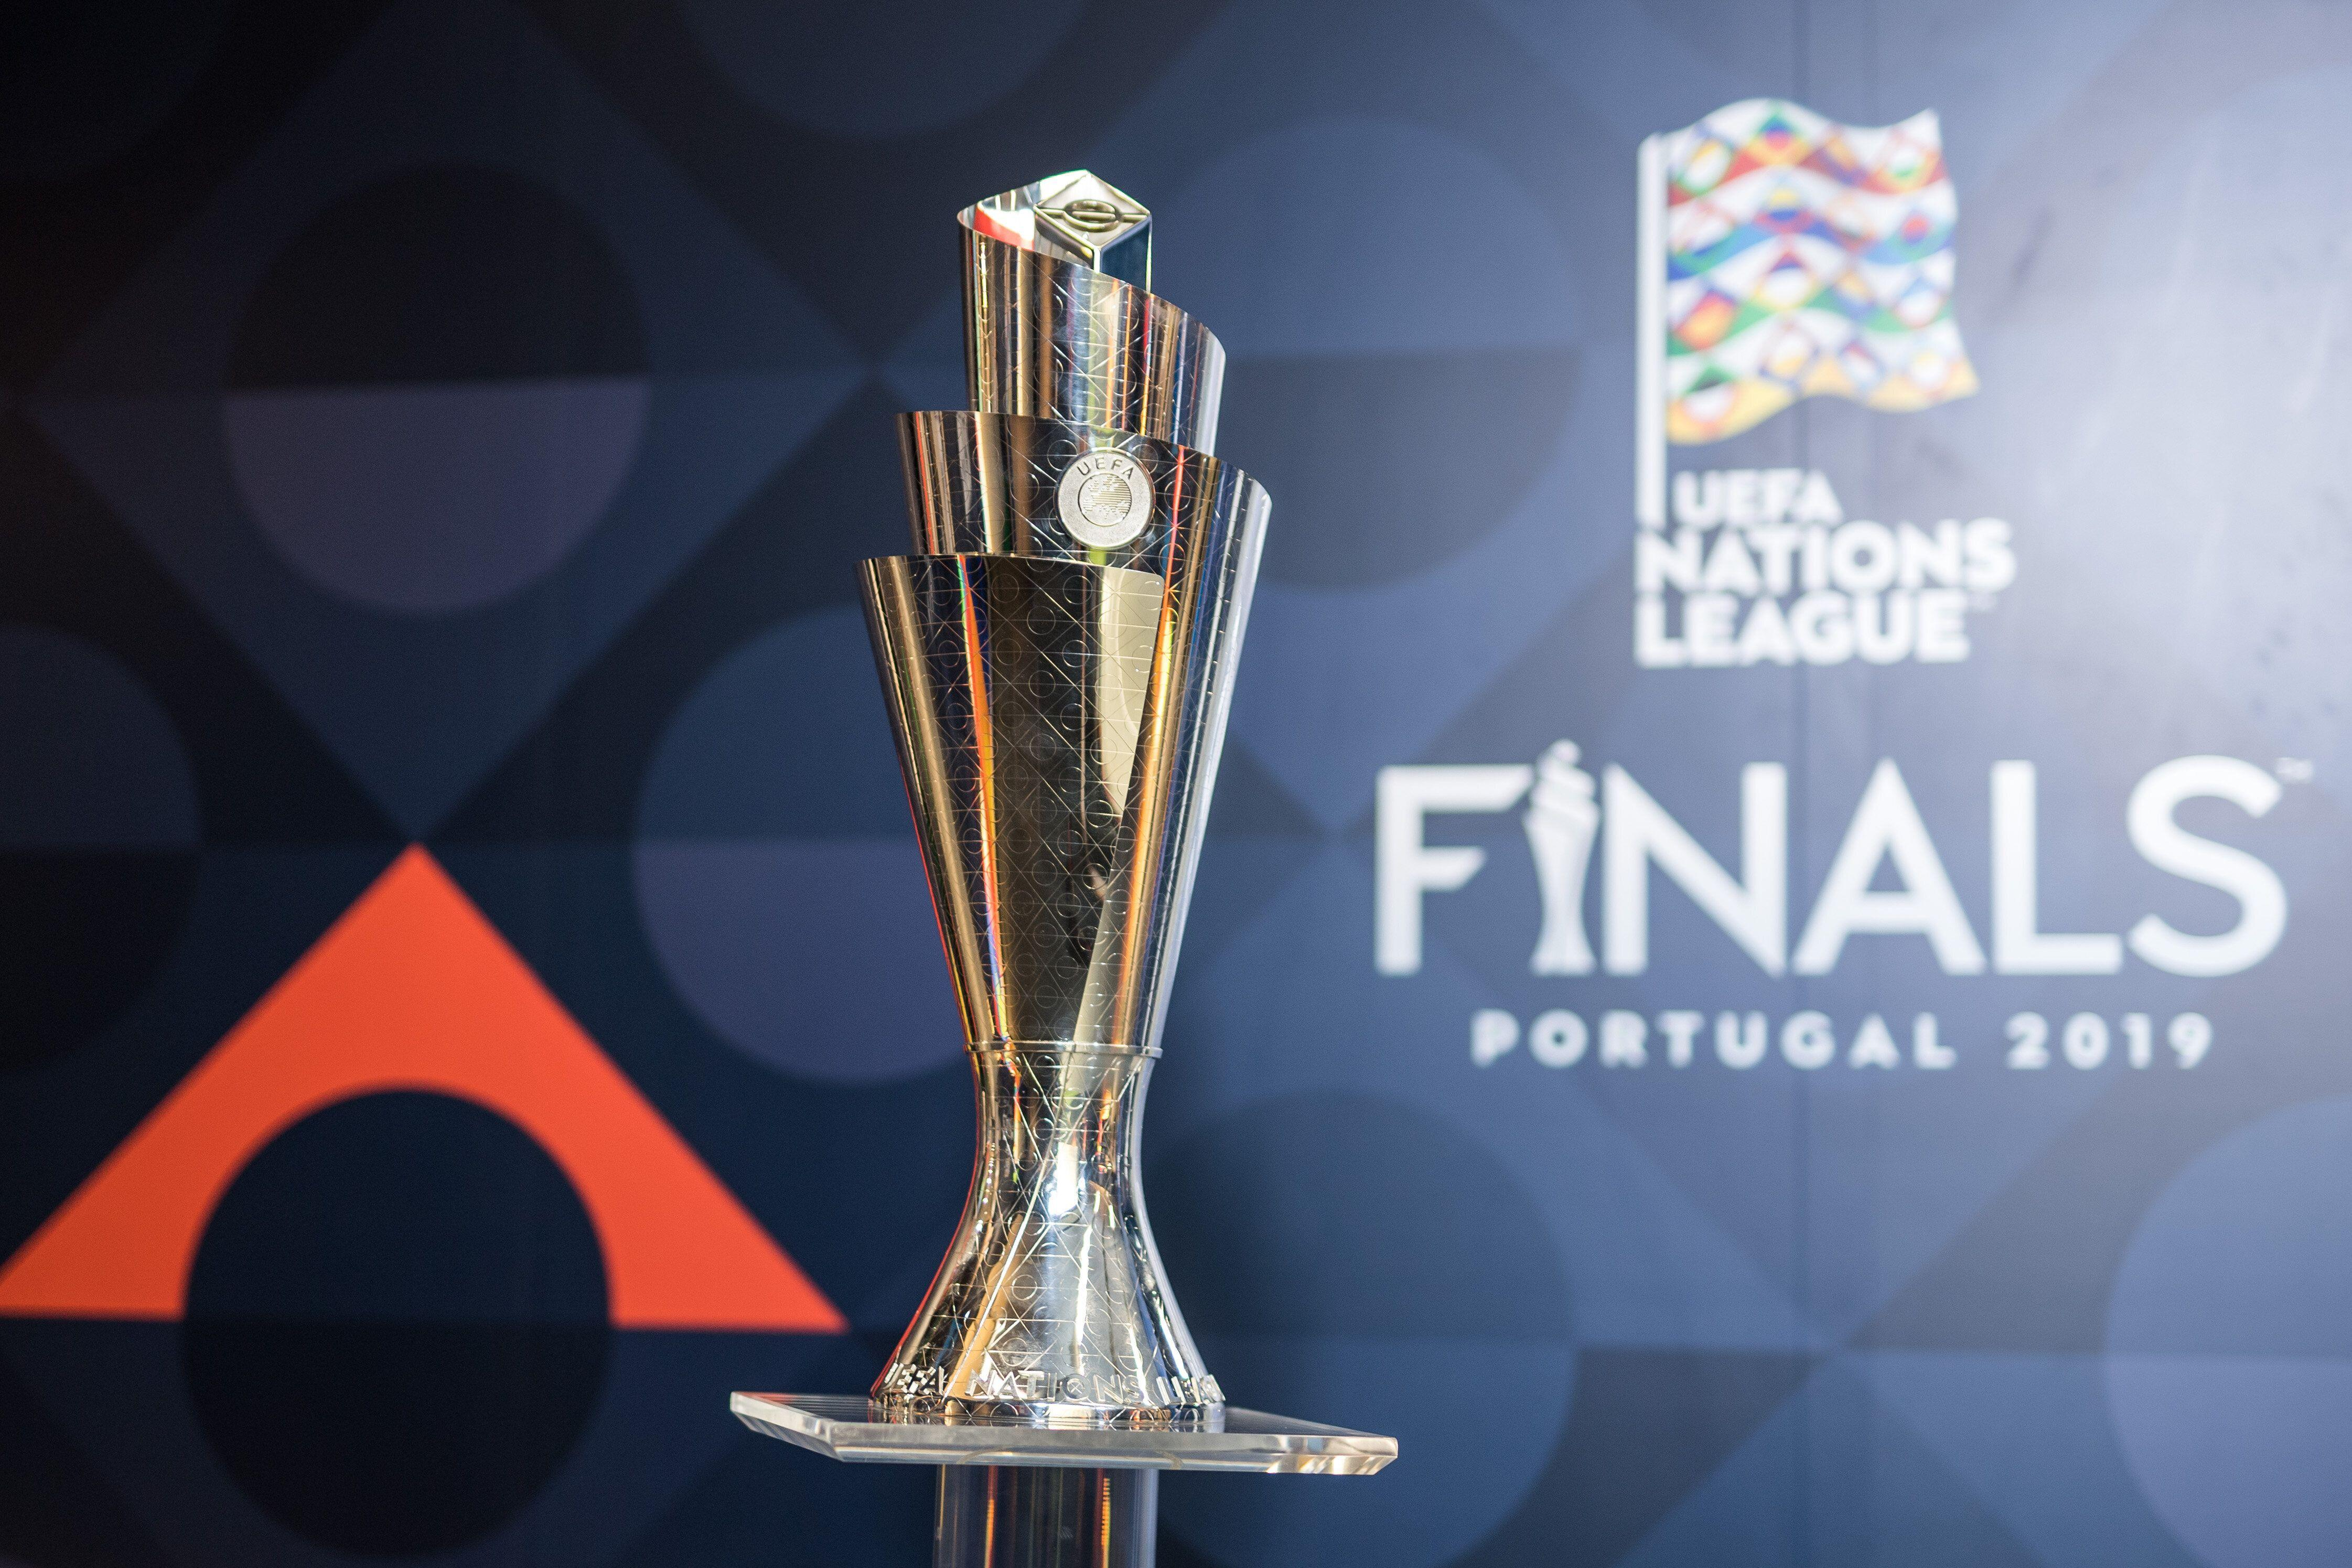 Your Uefa Nations League Finals Questions Answered